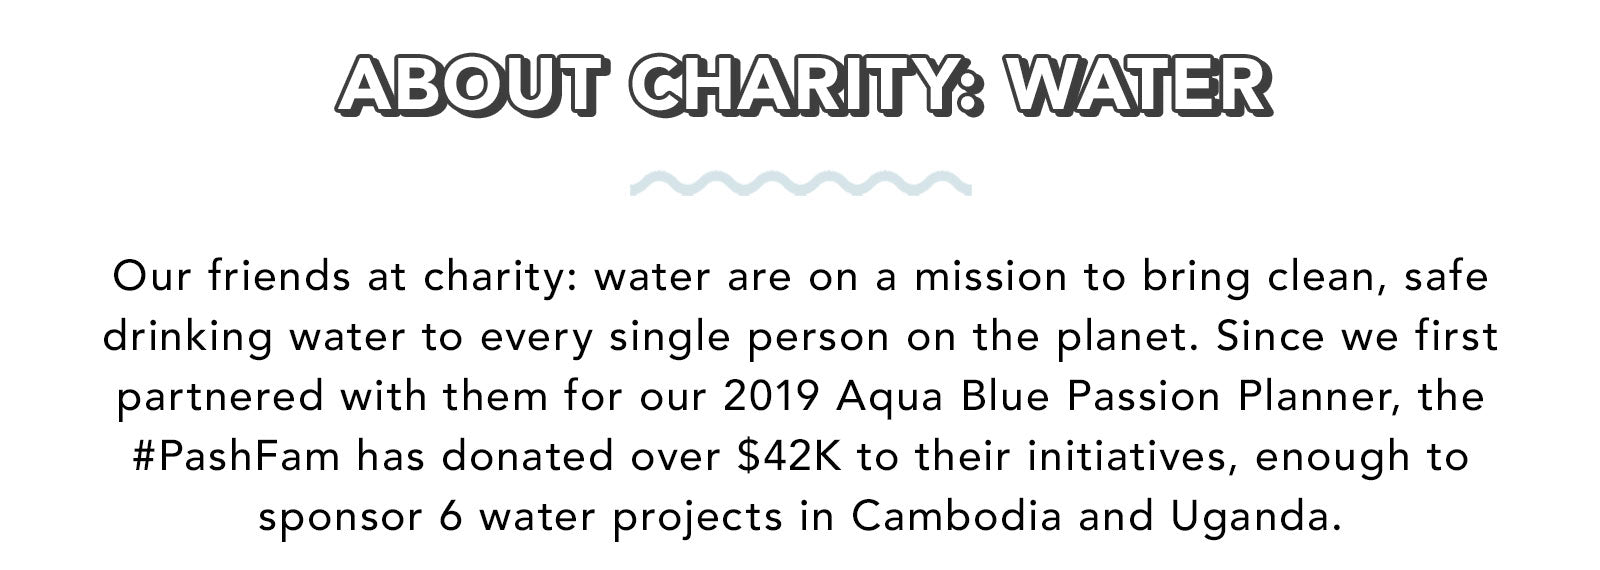 Our friends at charity: water are on a mission to bring clean, safe drinking water to every single person on the planet. Since we first partnered with them for our 2019 Aqua Blue Passion Planner, the #PashFam has donated over $42K to their initiatives, enough to sponsor 6 water projects in Cambodia and Uganda.